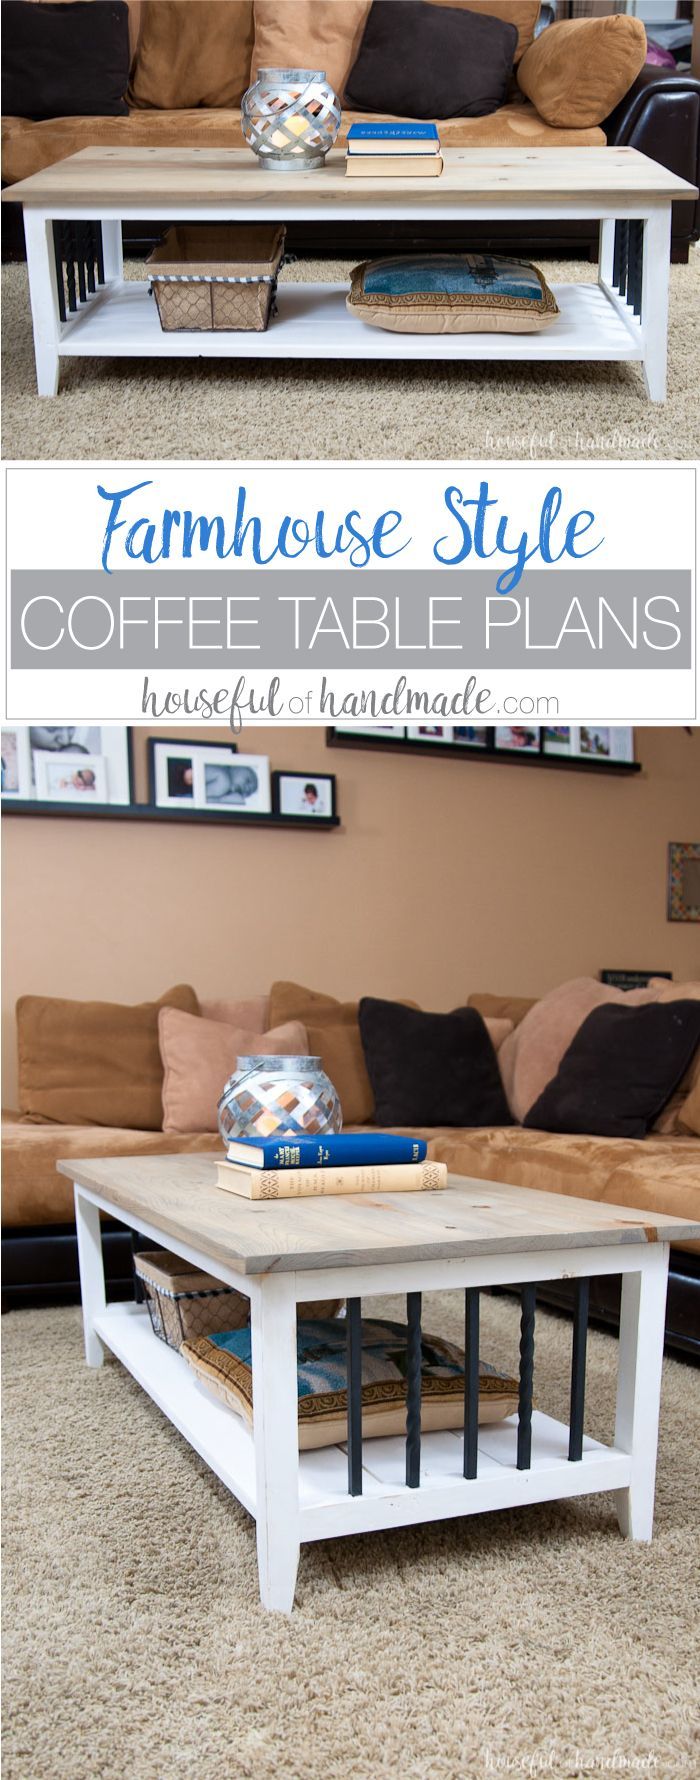 Farmhouse Coffee Table Build Plans is part of Upcycled Crafts Awesome Coffee Tables - Create the perfect place to relax with this easy to build farmhouse coffee table  Get the free build plans for this rustic, openshelf coffee table today